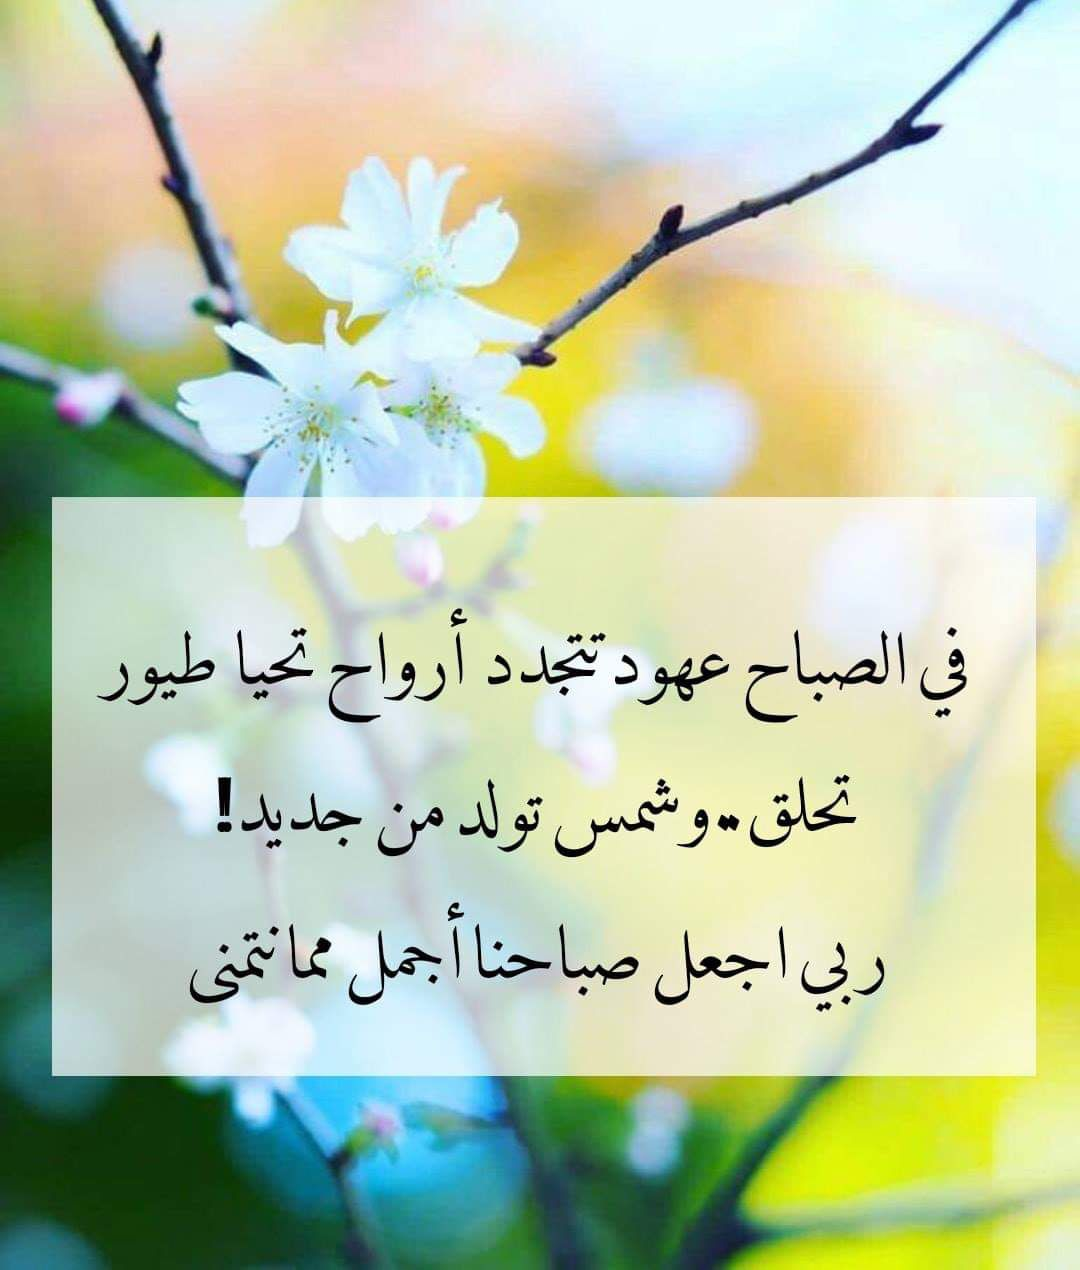 Pin By صورة و كلمة On صباح الخير Good Morning Good Morning Wishes Arabic Love Quotes Morning Quotes